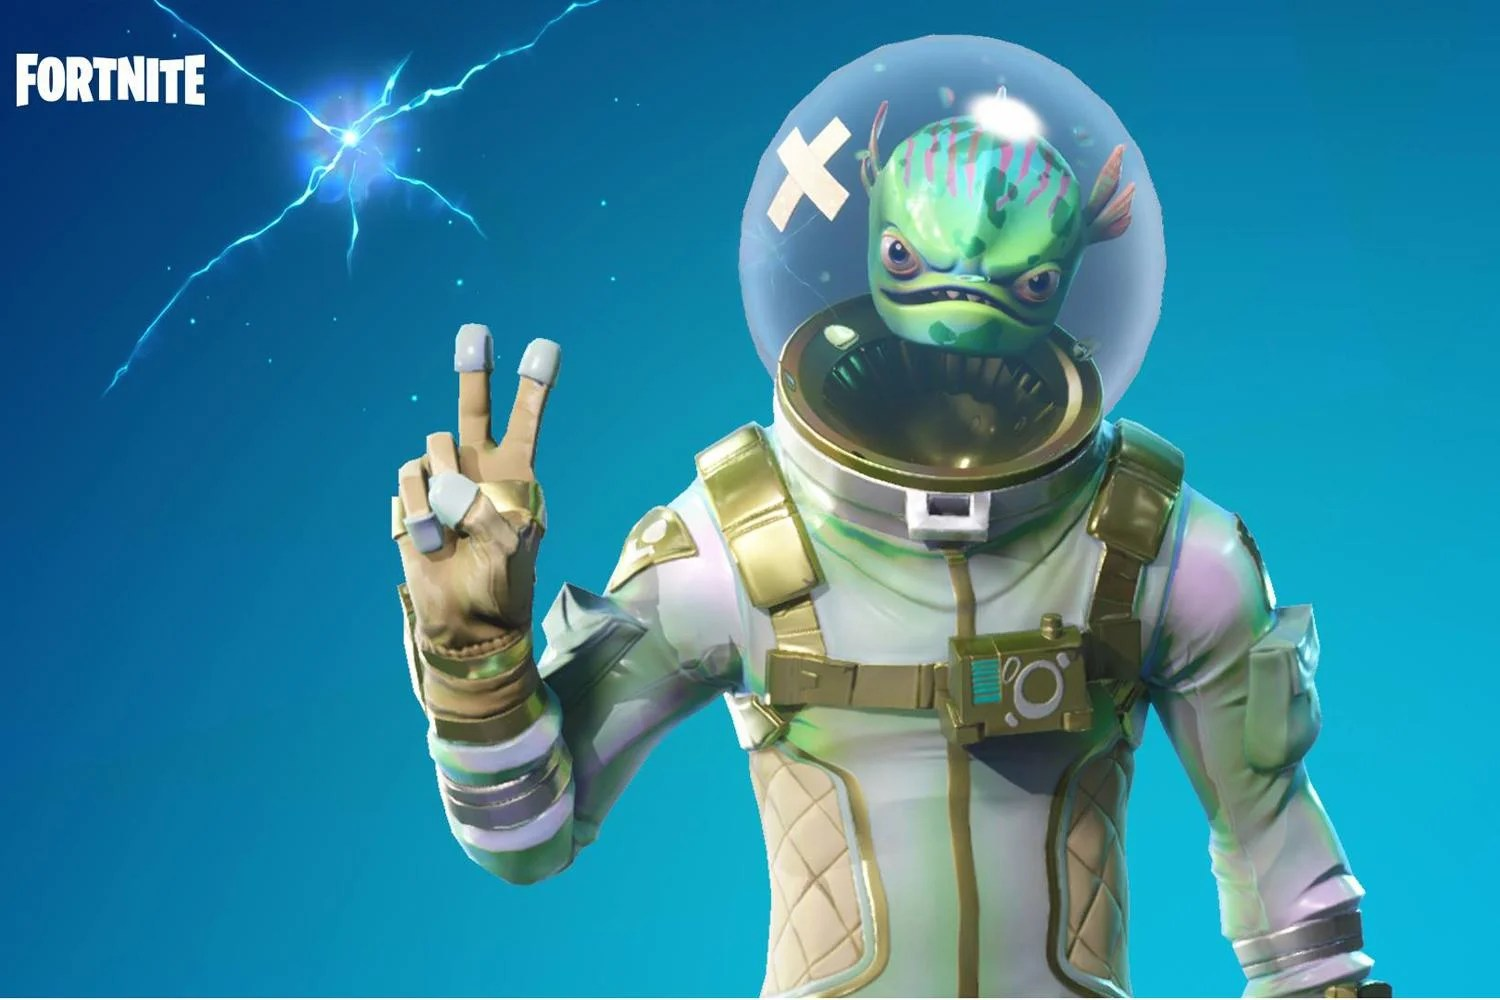 Fortnite Season 5  when is it out  new themes and map changes     The return of the Fortnite alien hints at a space or time travel theme for  Season